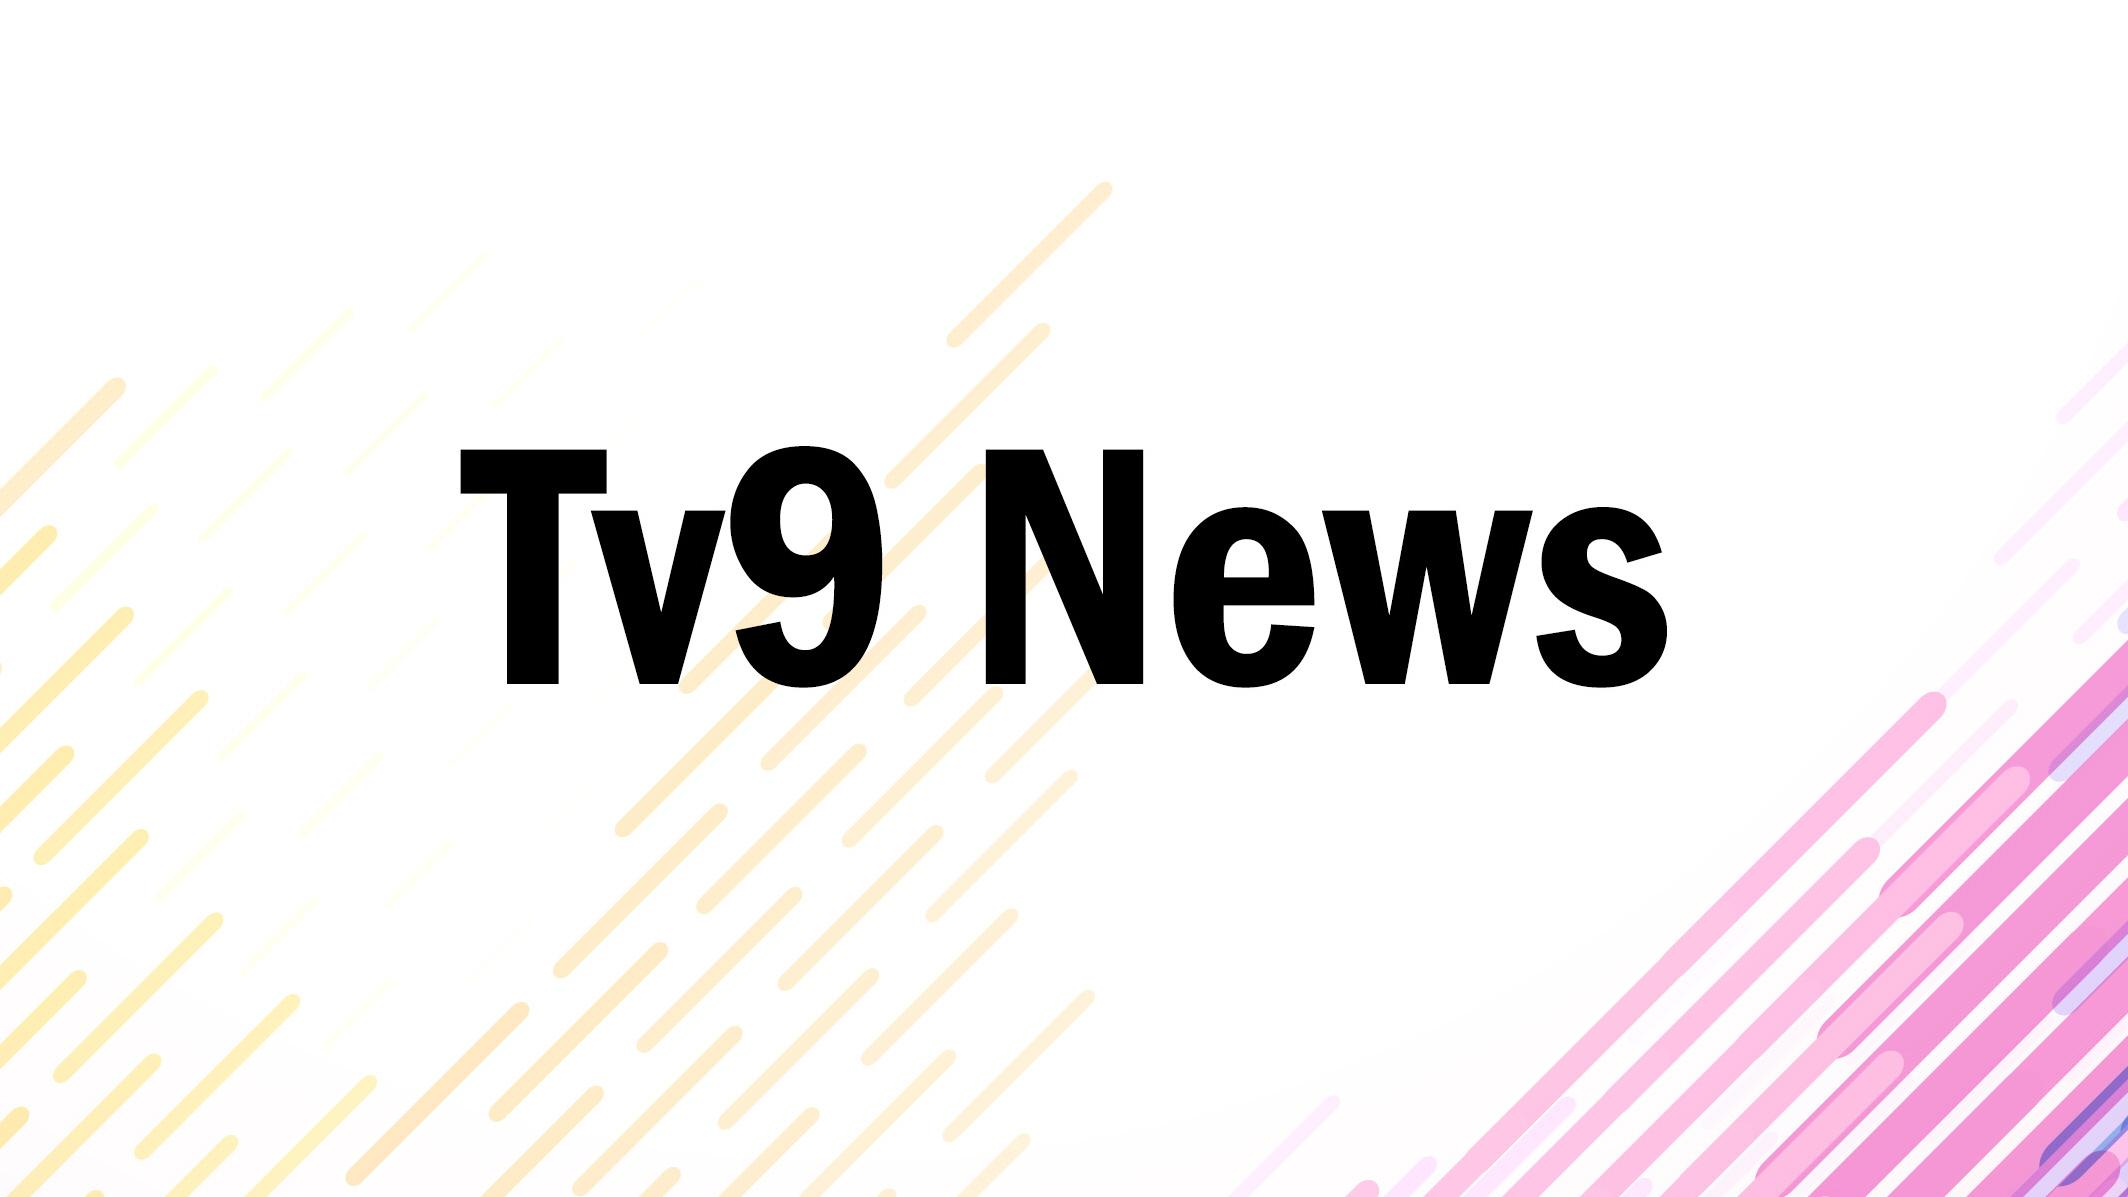 Stream And Watch Tv9 News Online | Sling TV